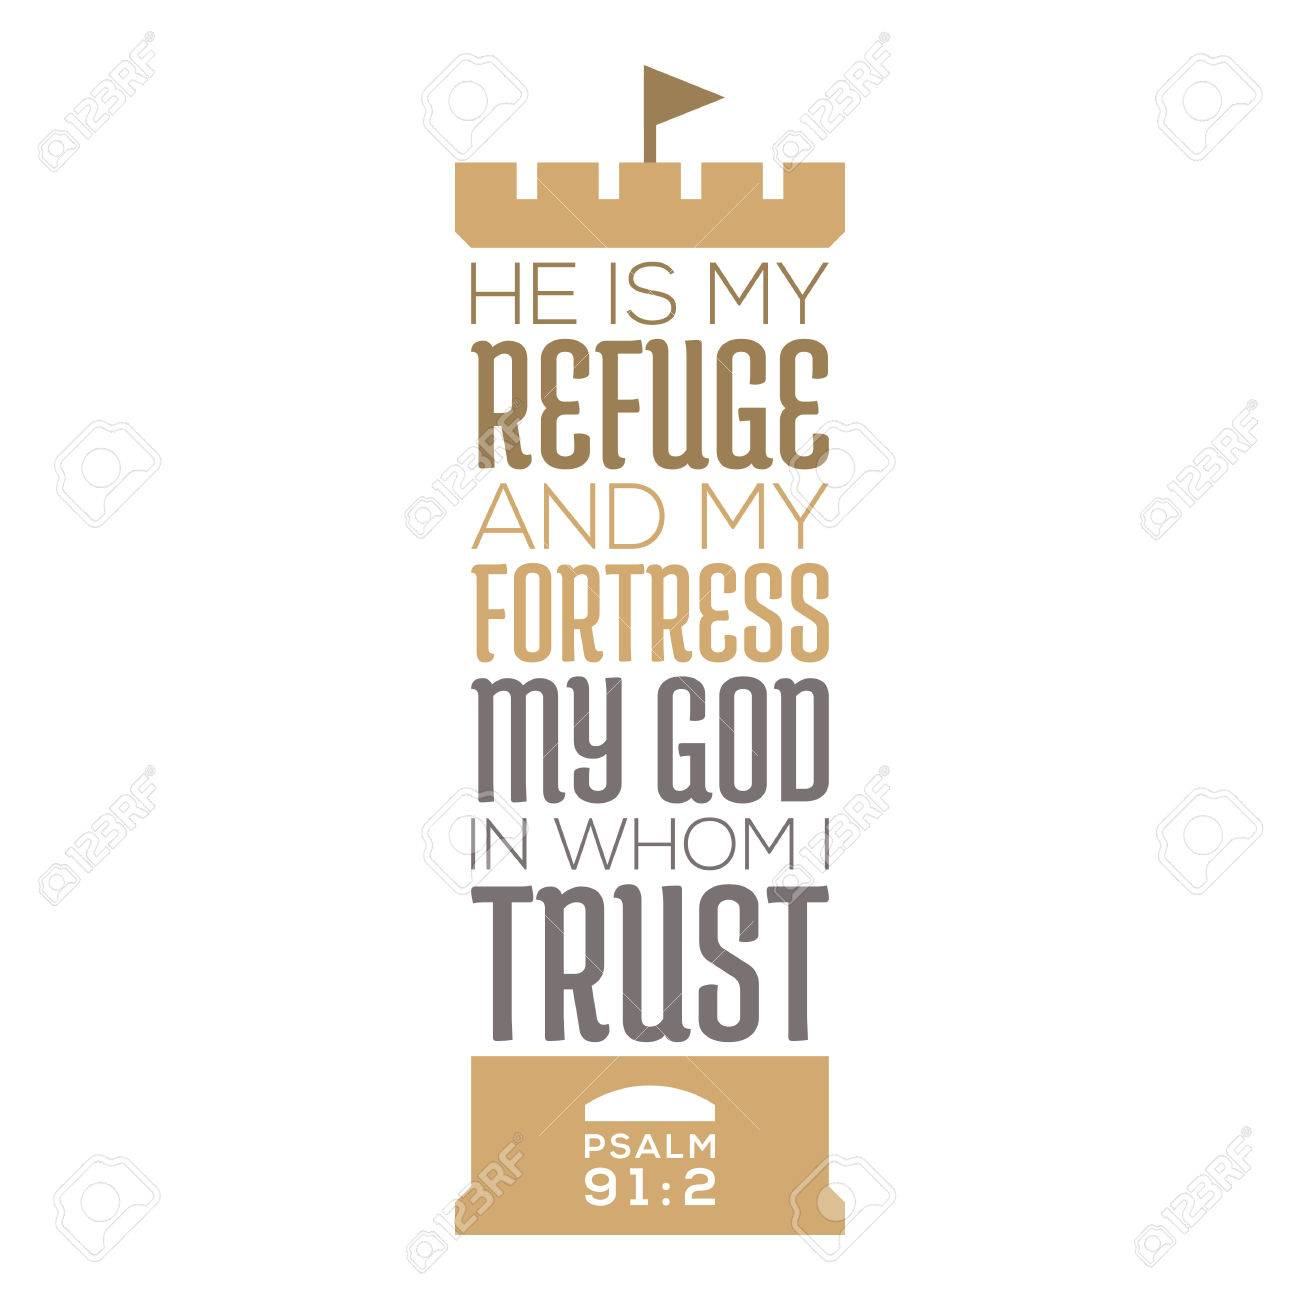 He is my refuge and my fortress, my god in whom i trust, bible